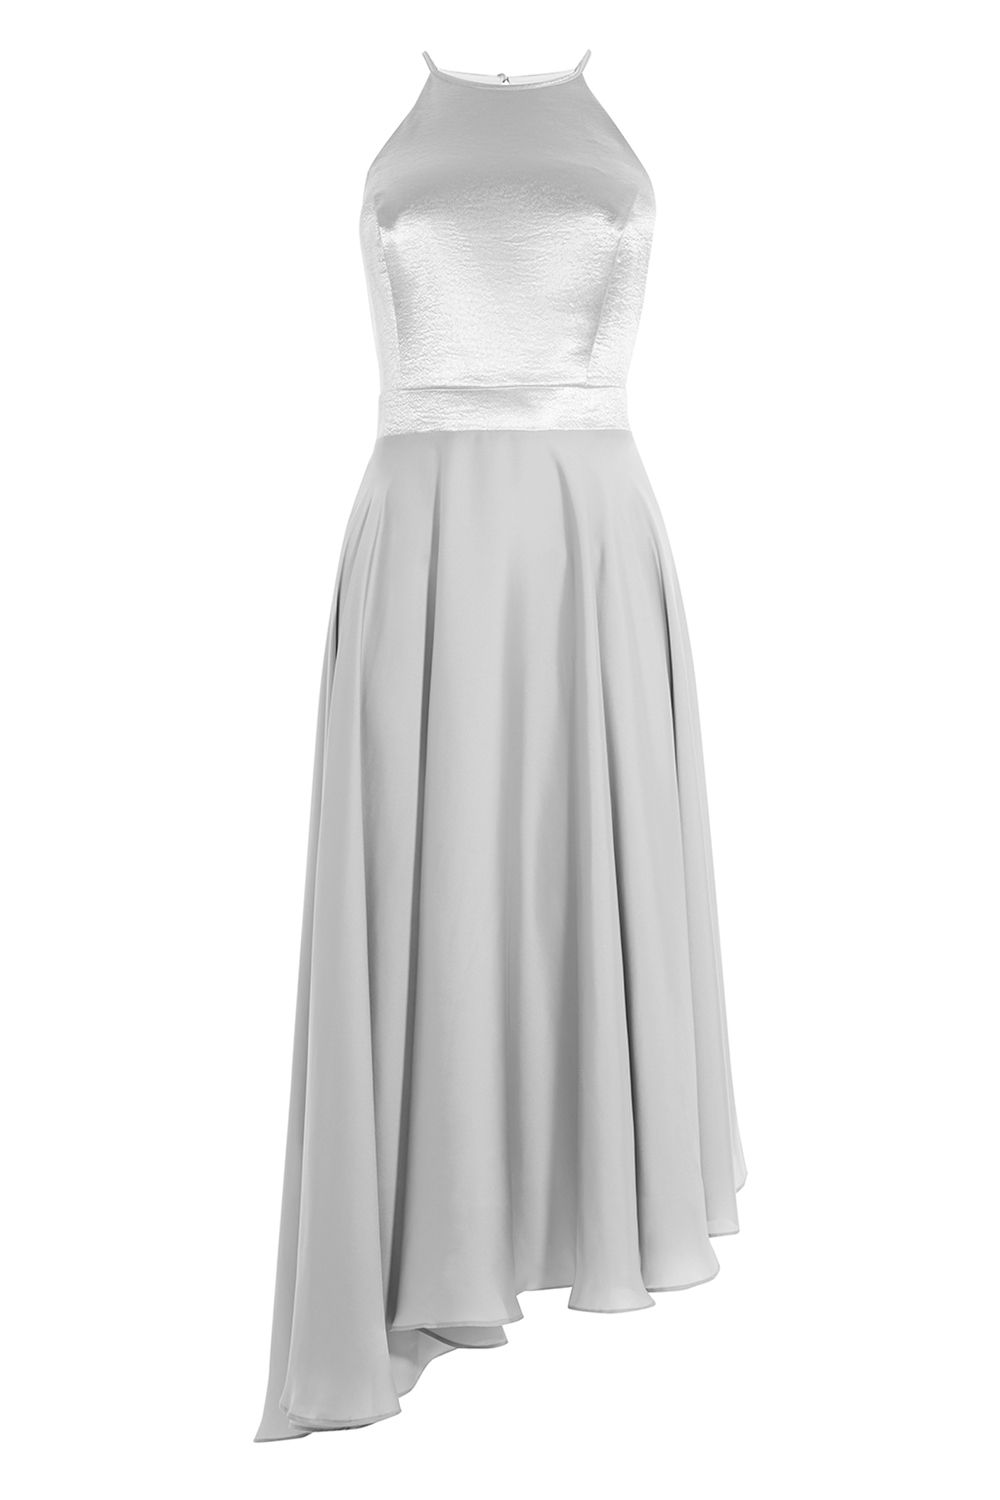 Coast Becky Satin Bridesmaids Dress, Silver